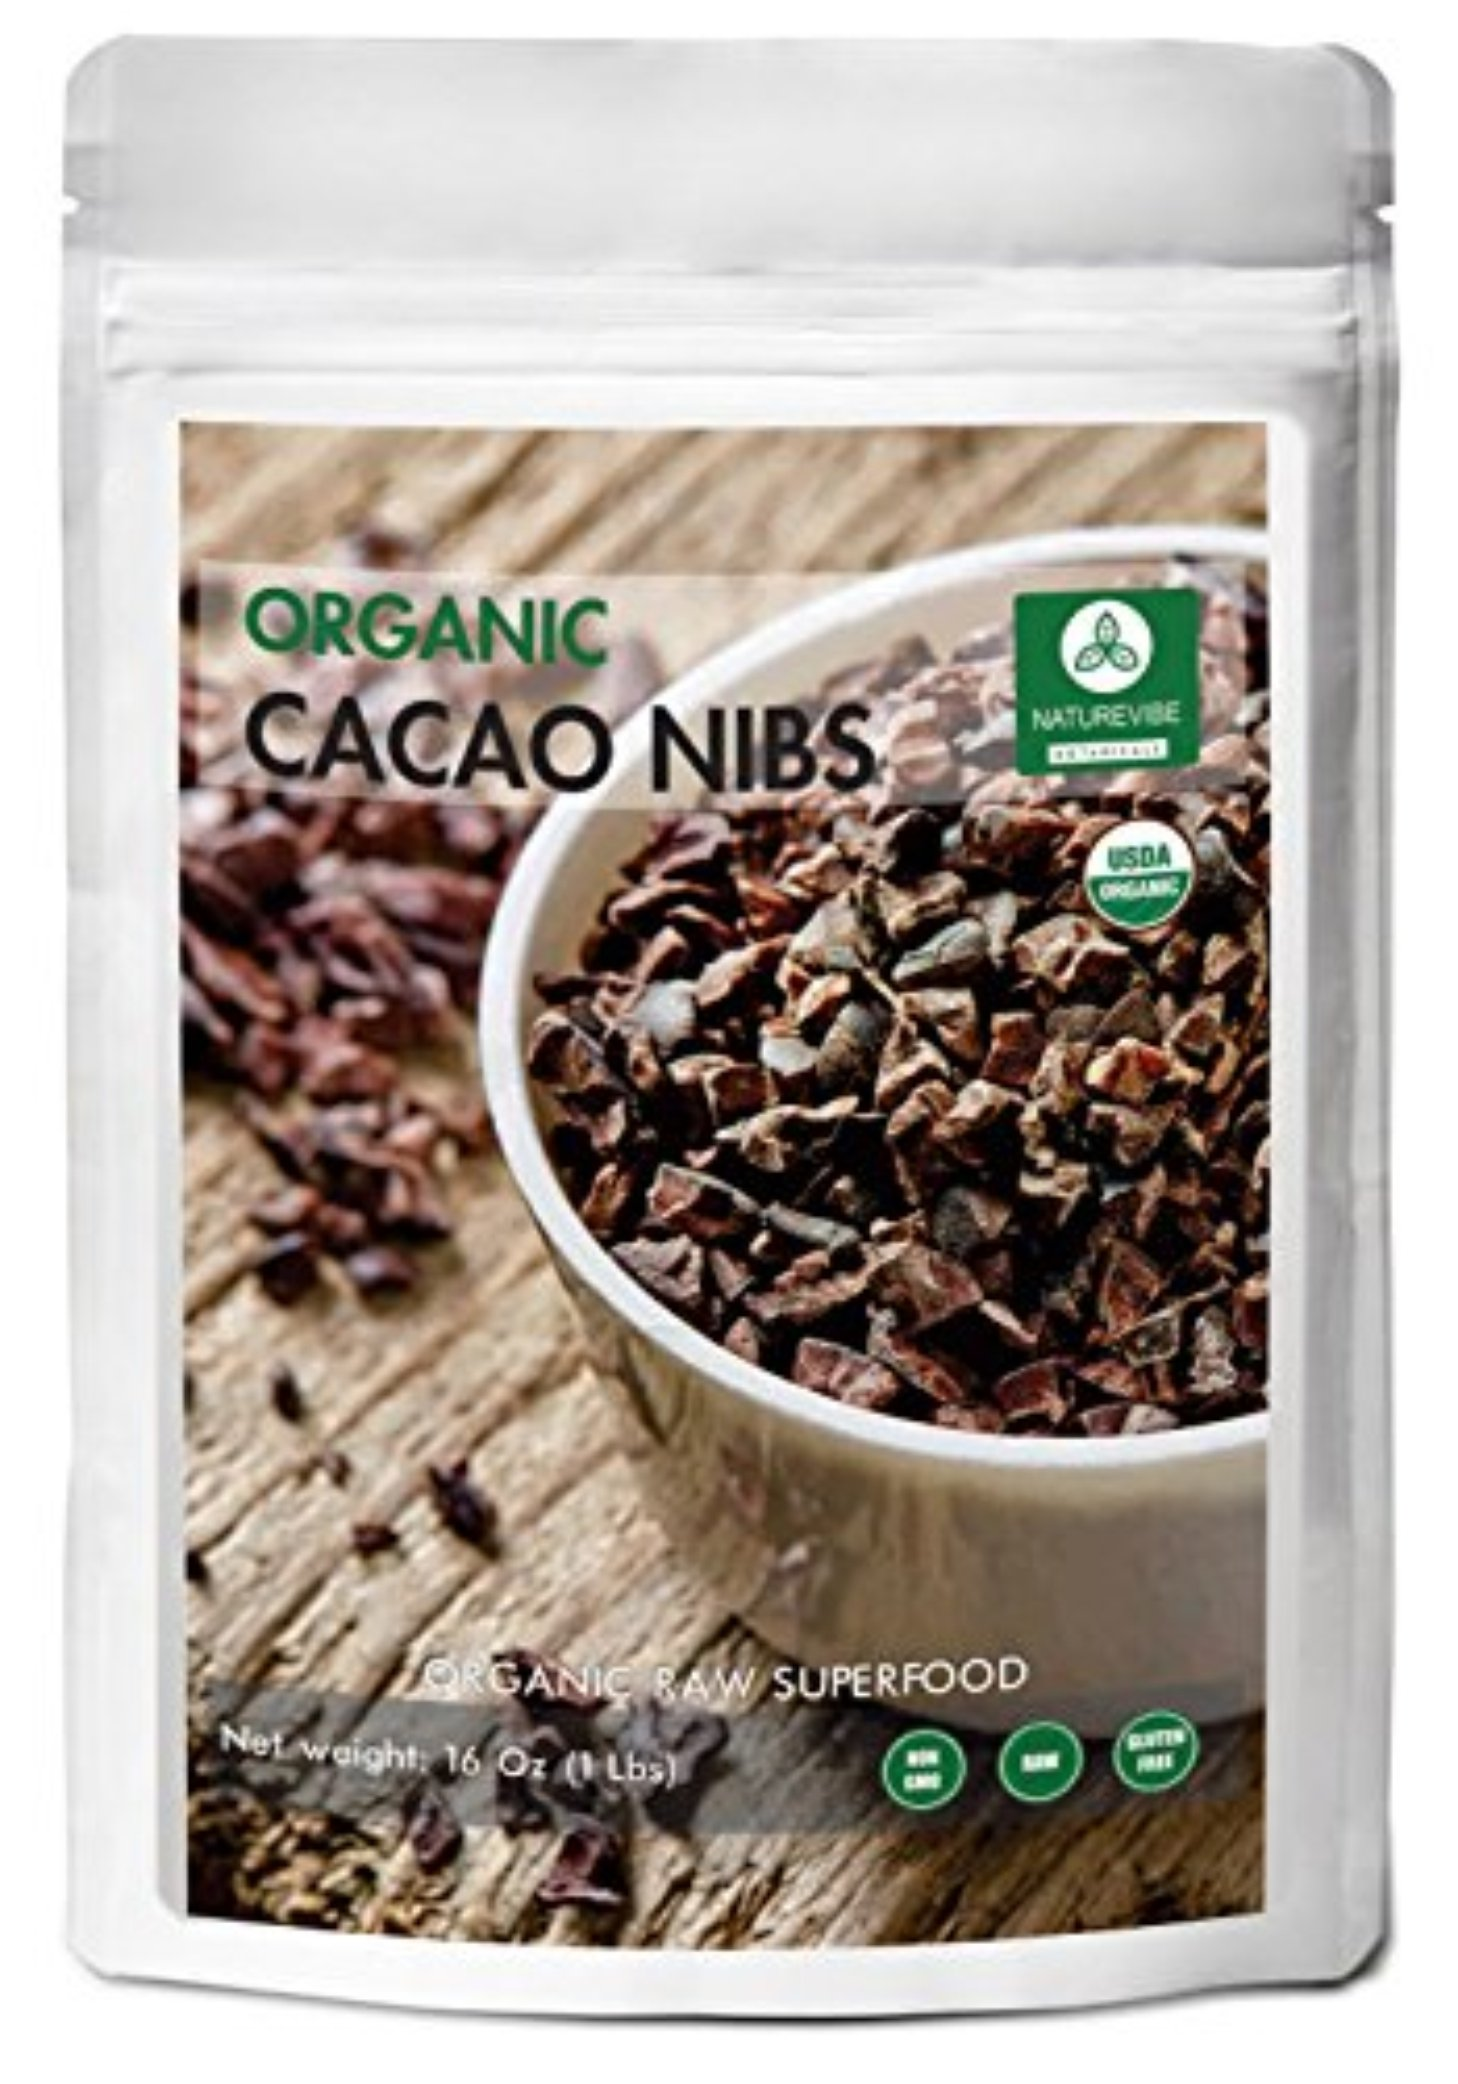 Organic Cacao Nibs (1lbs) by Naturevibe Botanicals, Gluten-Free & Non-GMO (16 ounces)